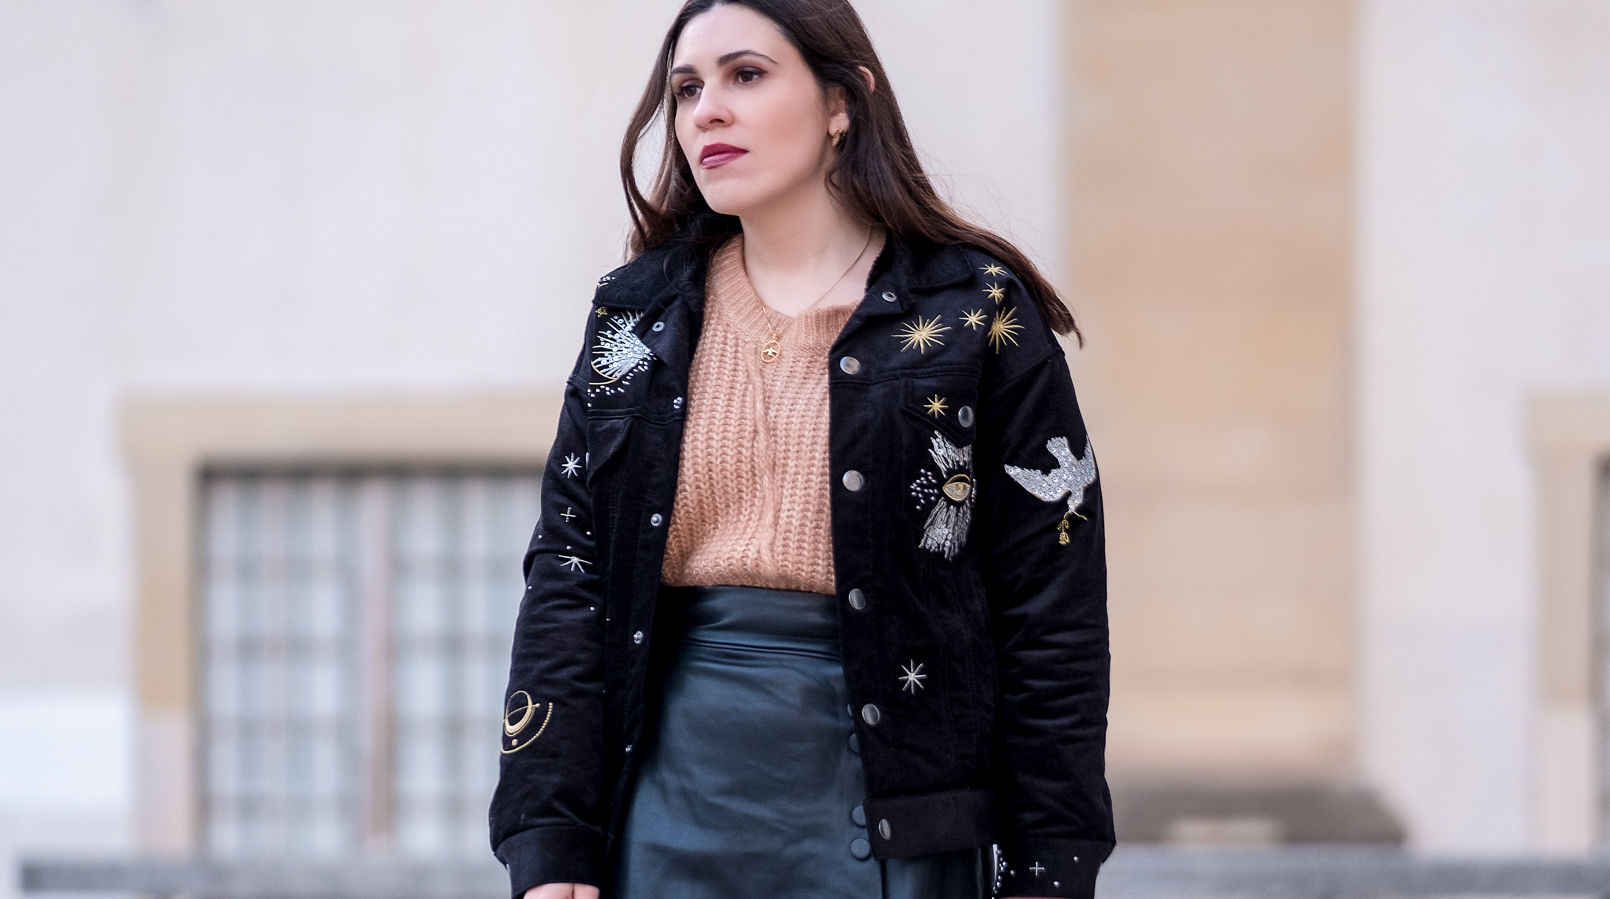 Le Fashionaire Is the wood bag the new it bag? black jacket stars moon embroidered gold hm camel wool zara knit gold silver bird cinco necklace front buttons black fake leather zara skirt 1949F EN